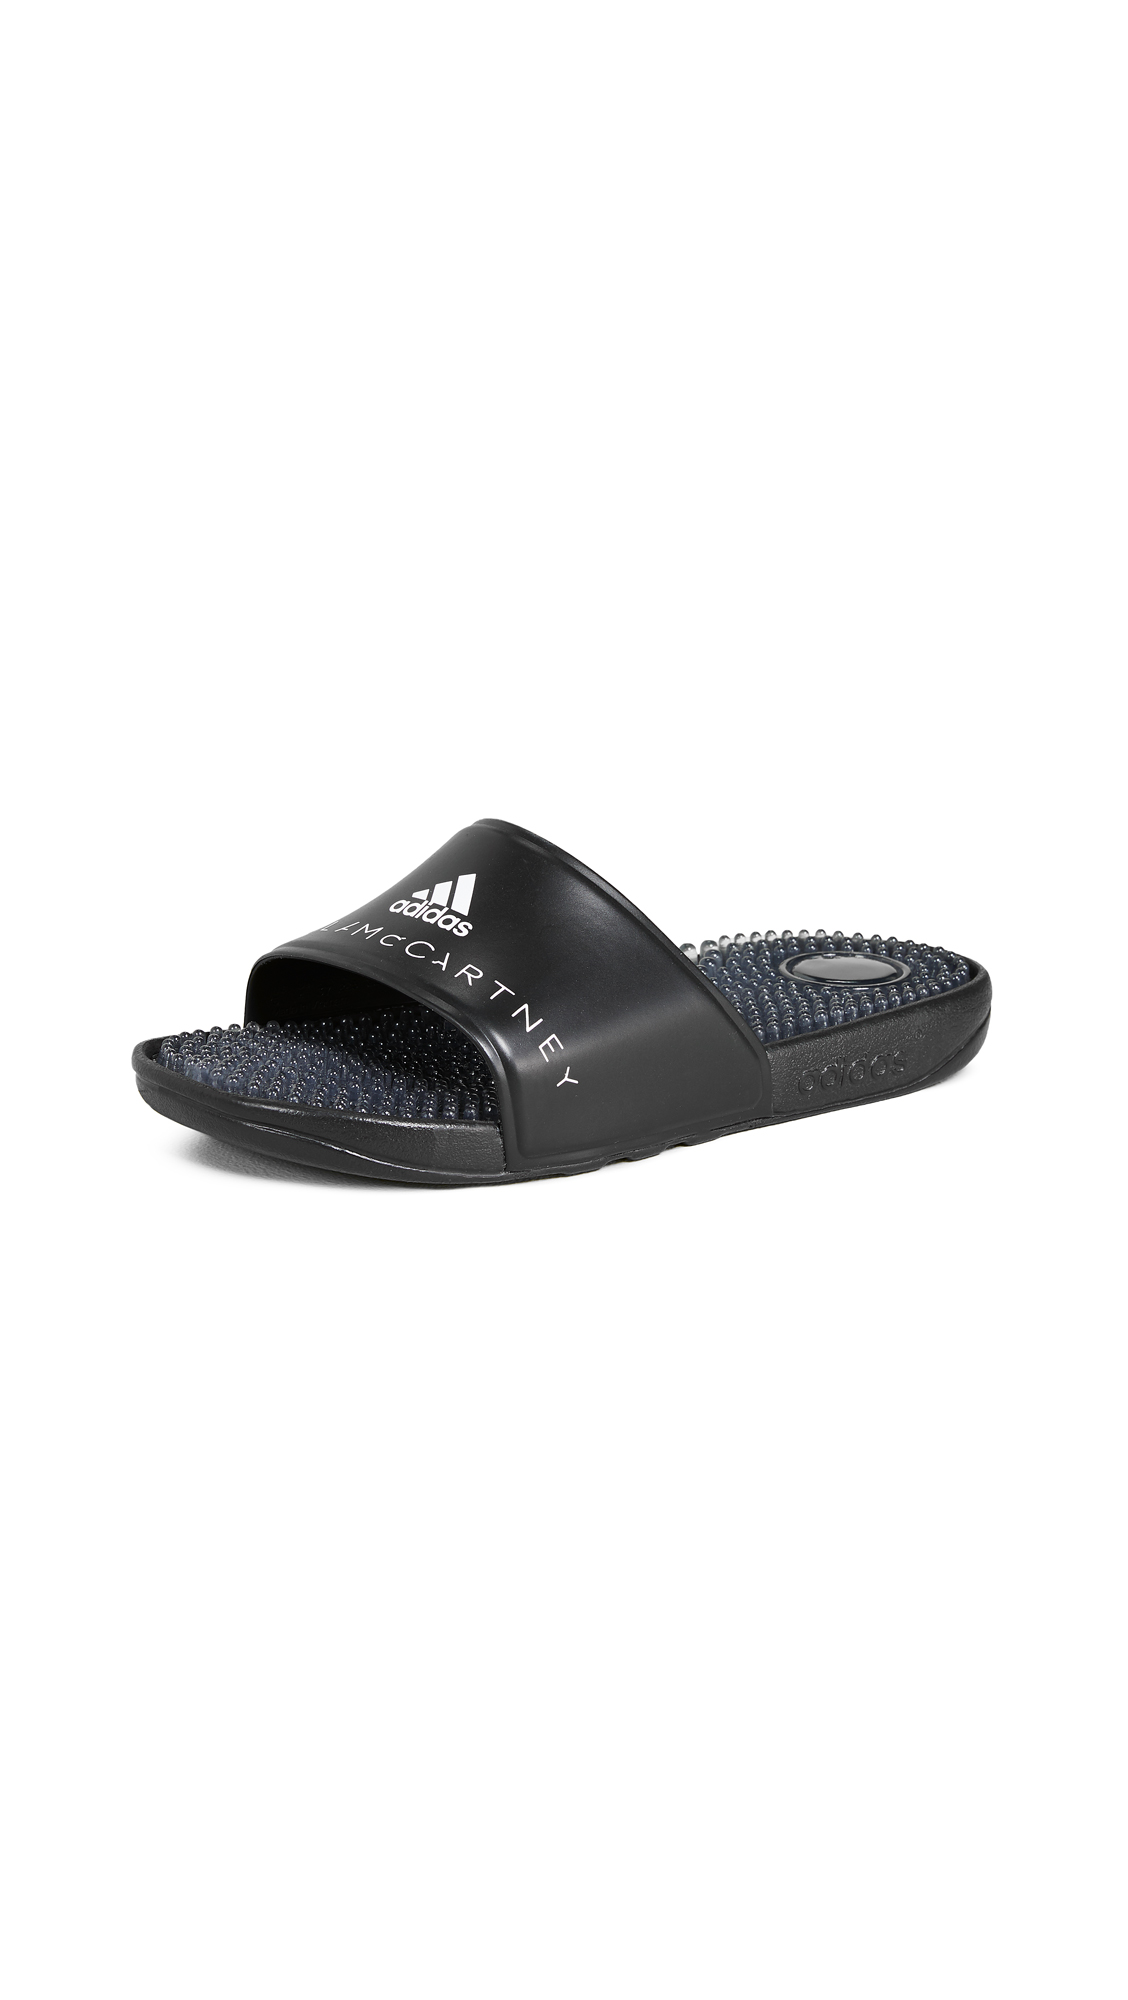 adidas by Stella McCartney Adissage W Slides - Black/Black/White